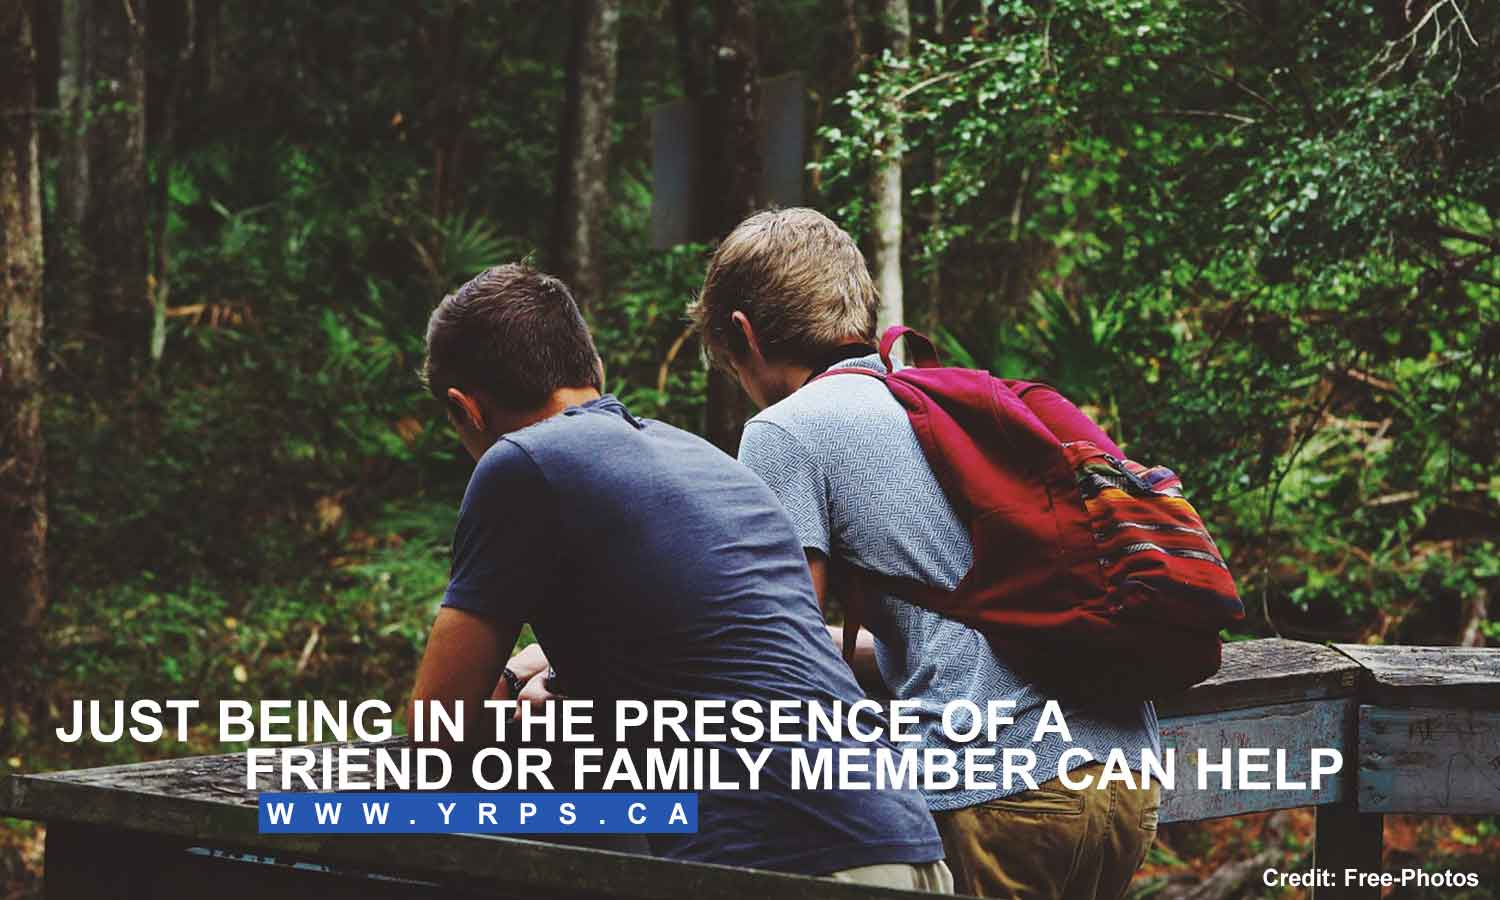 Just being in the presence of a friend or family member can help